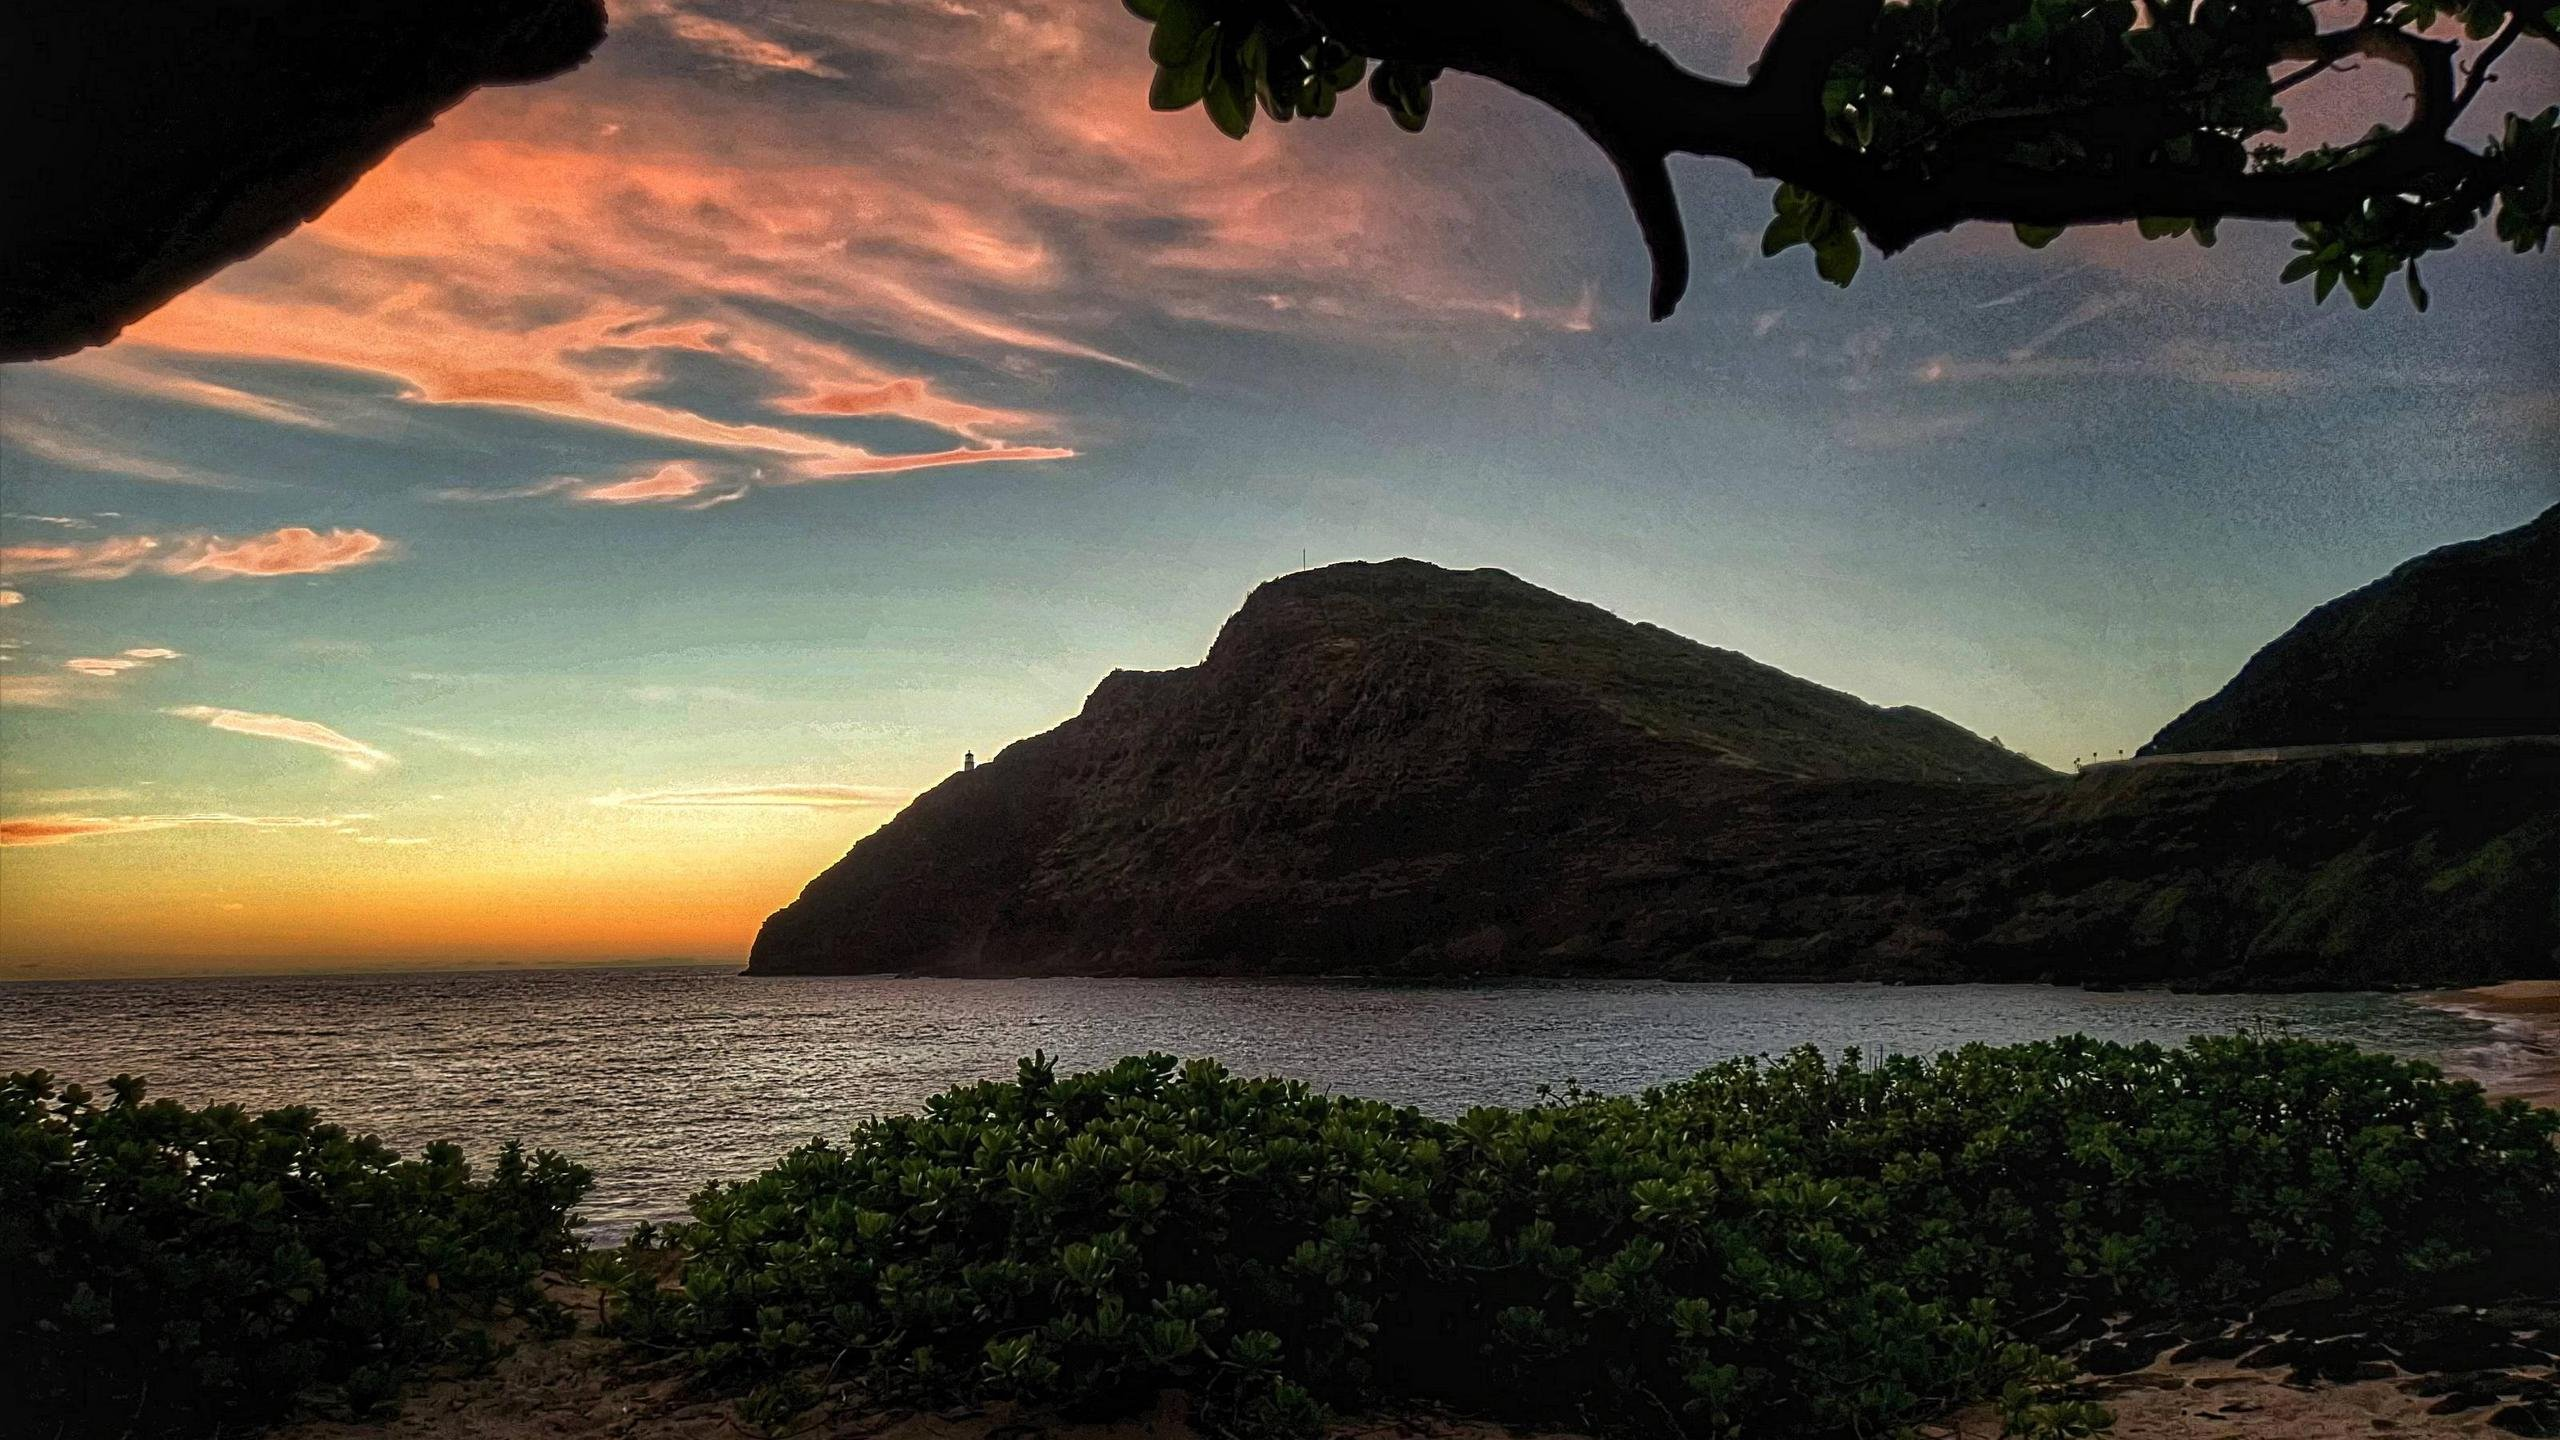 Sunrise at Makapu Beach Oahu Hawaii wallpaper